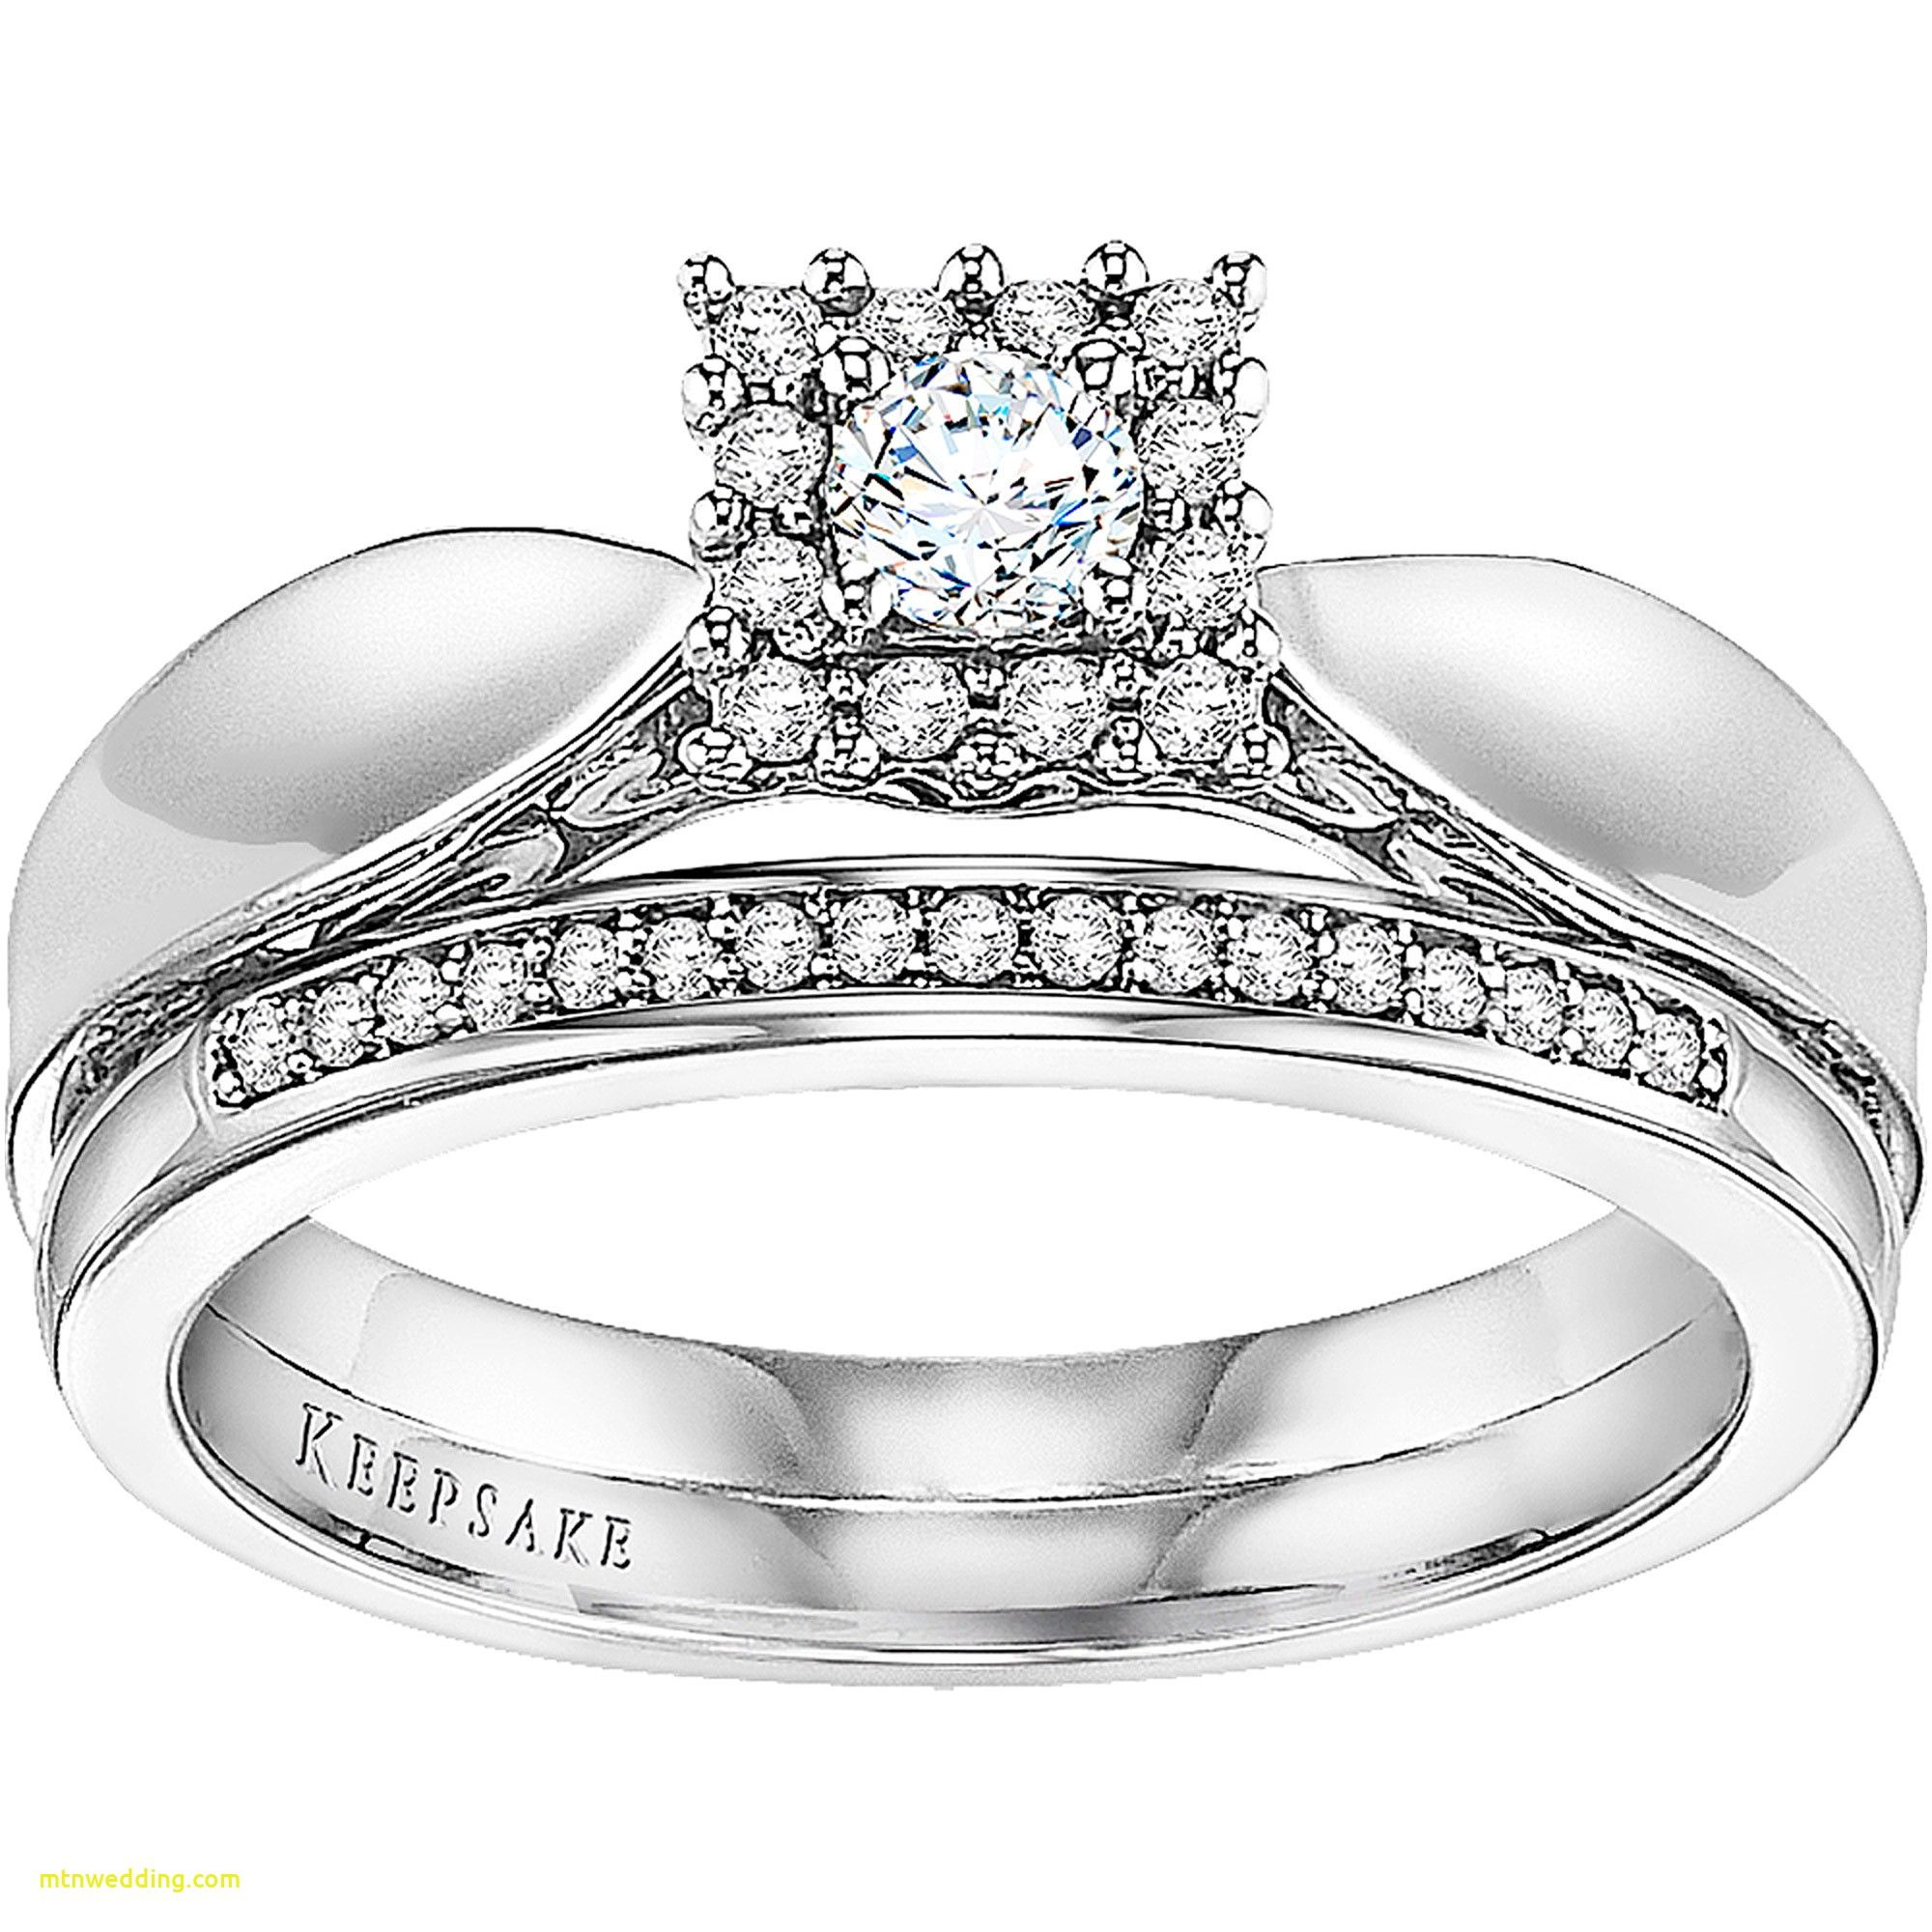 Inspirational Walmart Engagement Rings And Wedding Bands Check More At Http Mtnwedding Com Wedding Ring Engagement Rings Walmart Engagement Rings And Wedding